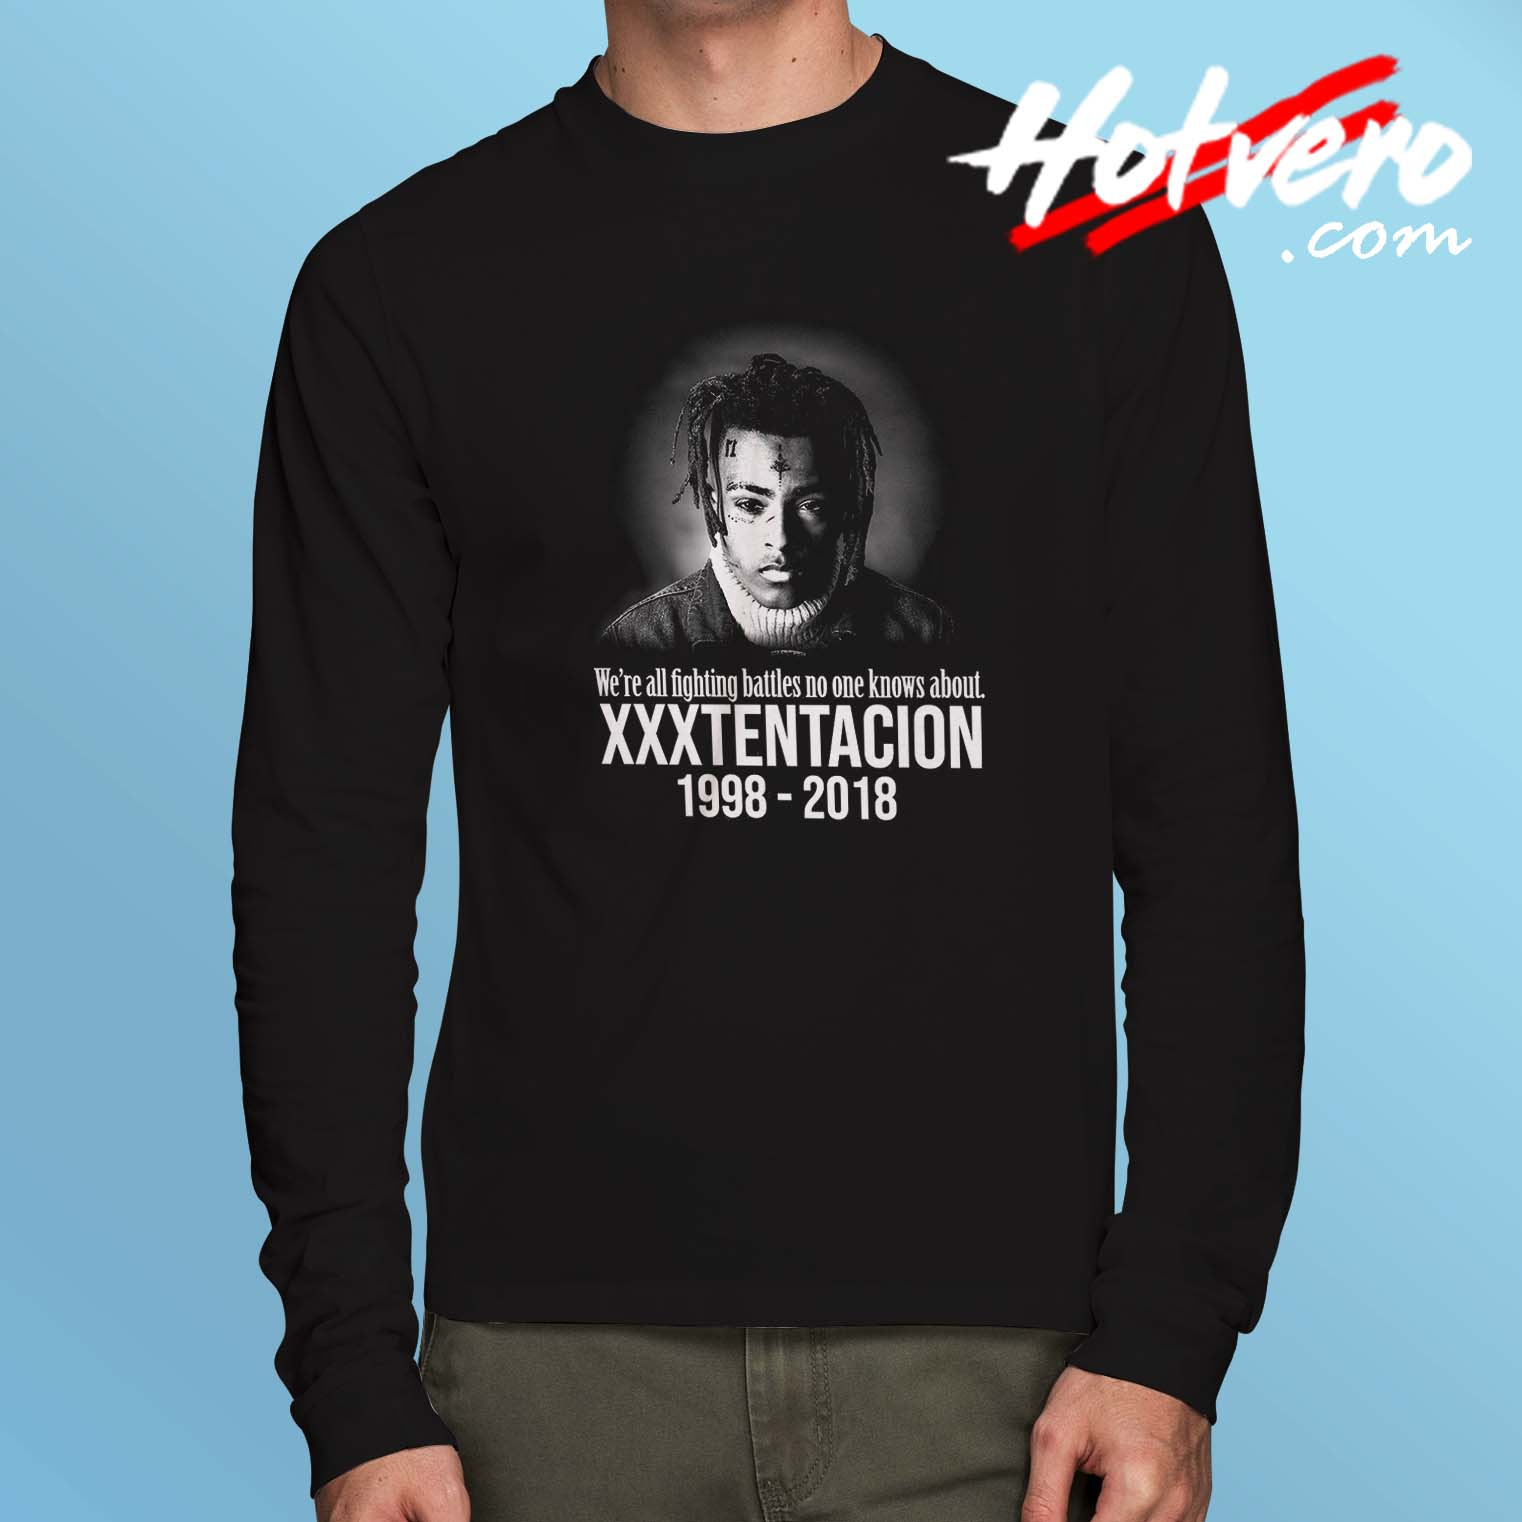 Cheap XXXTentacion Memories Long Sleeve Shirt